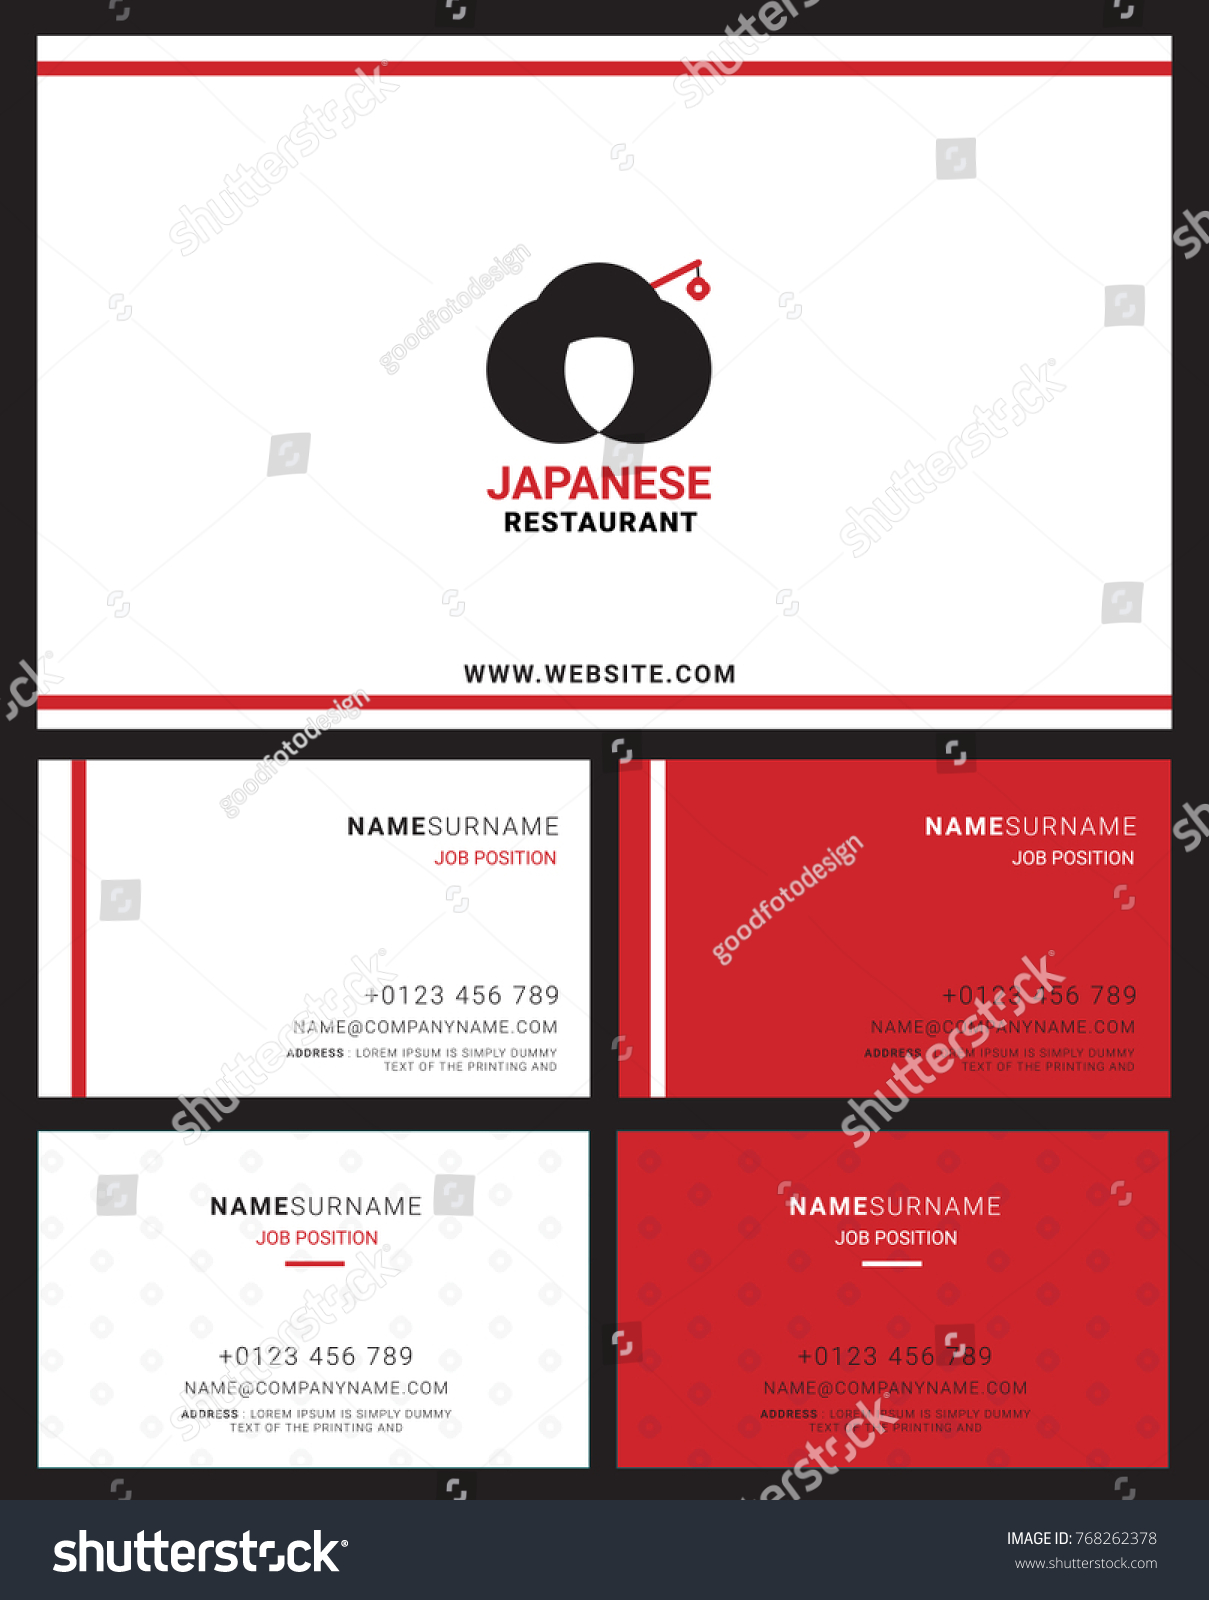 Printing Business Cards Japan Images - Card Design And Card Template